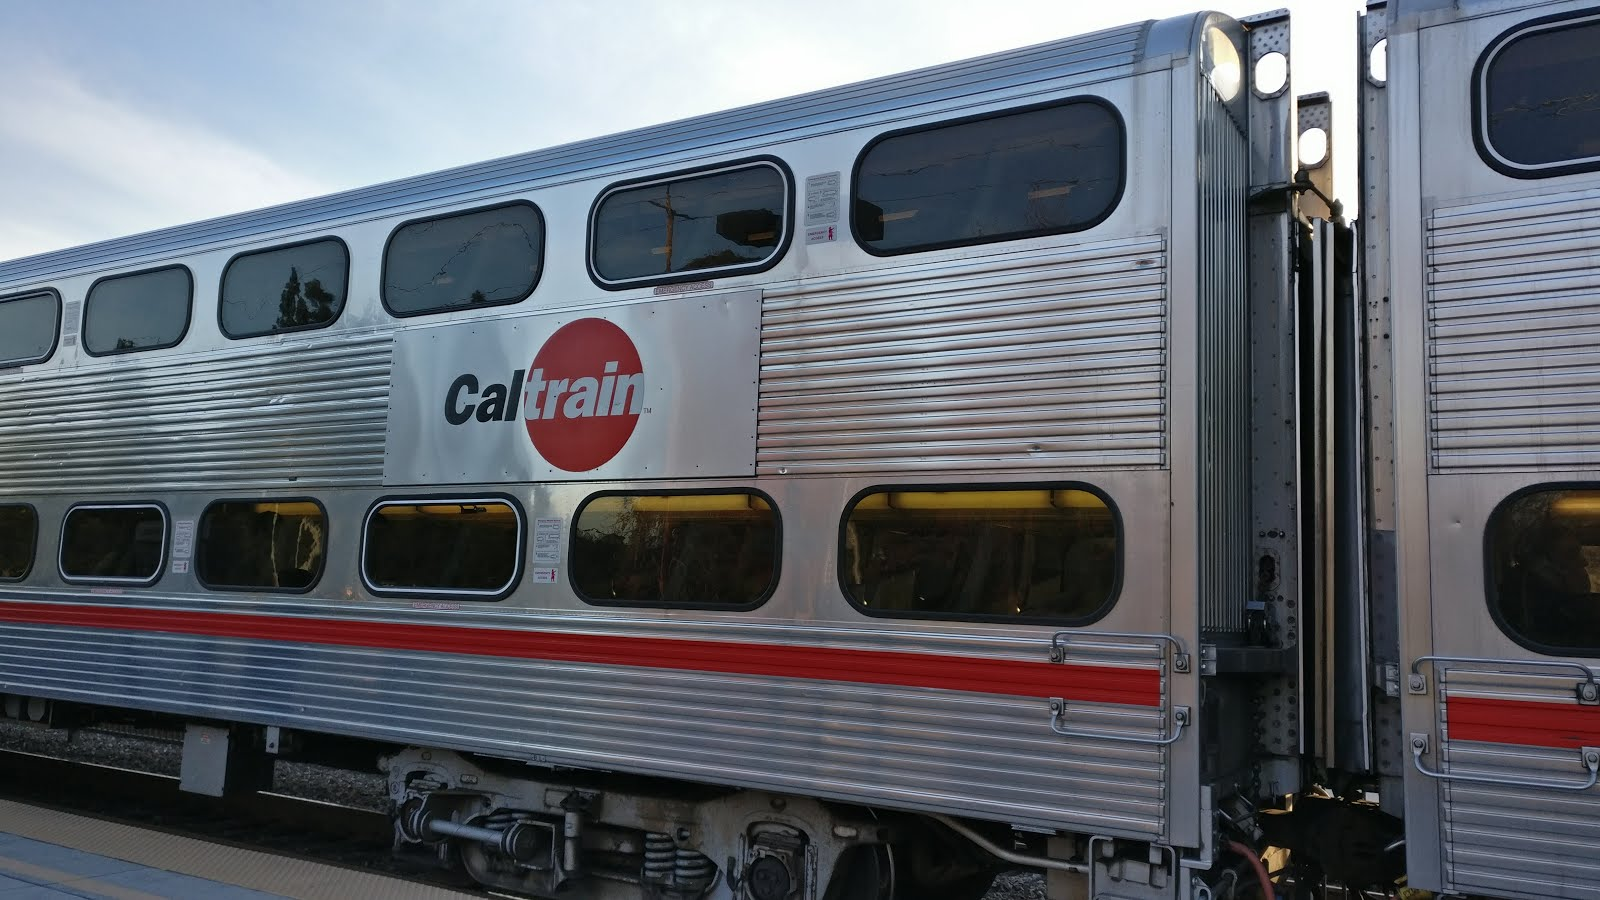 caltrain 1 - Silicon Valley in pictures